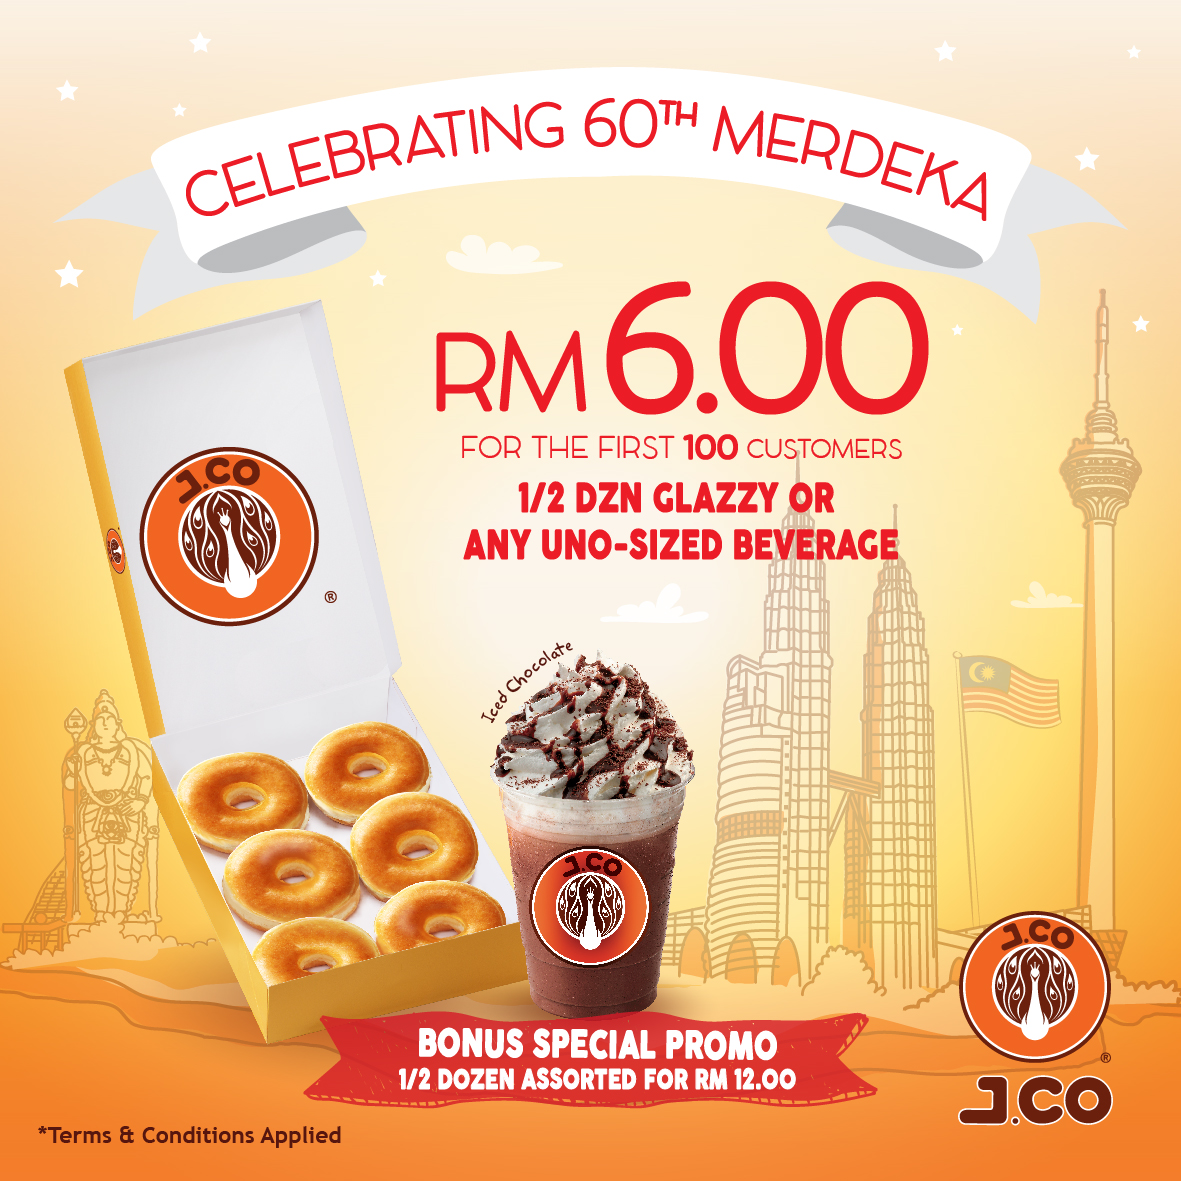 J.CO Merdeka Promotion